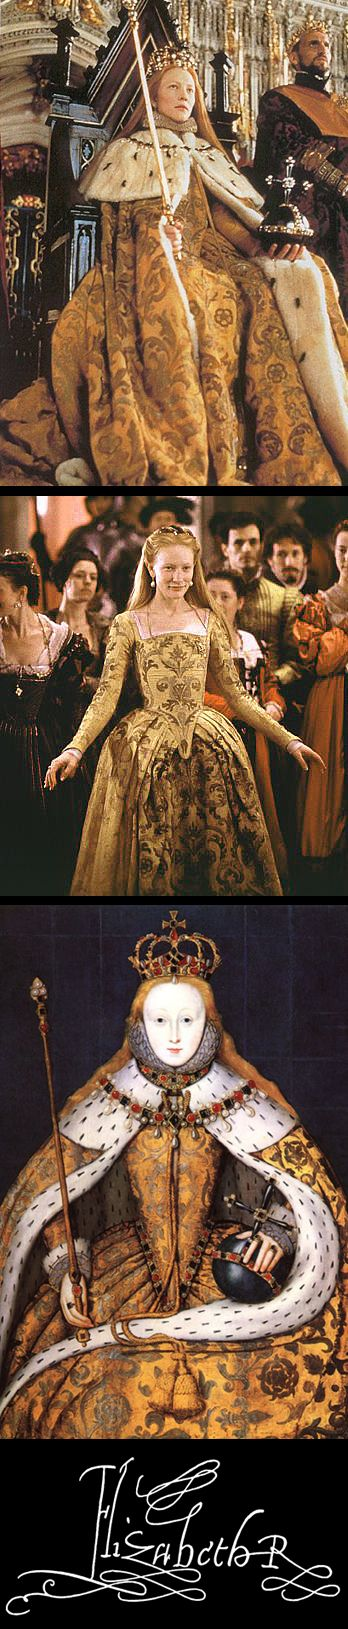 The coronation costume from the movie, 'Elizabeth